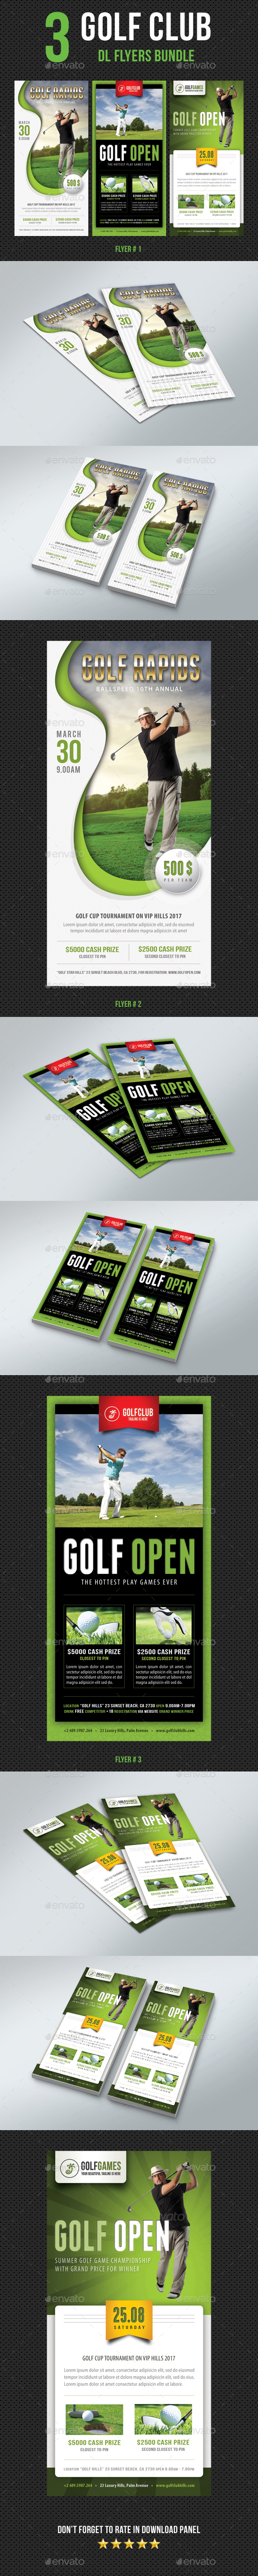 3 in 1 Golf Club DL Flyer Bundle V2 - Sports Events